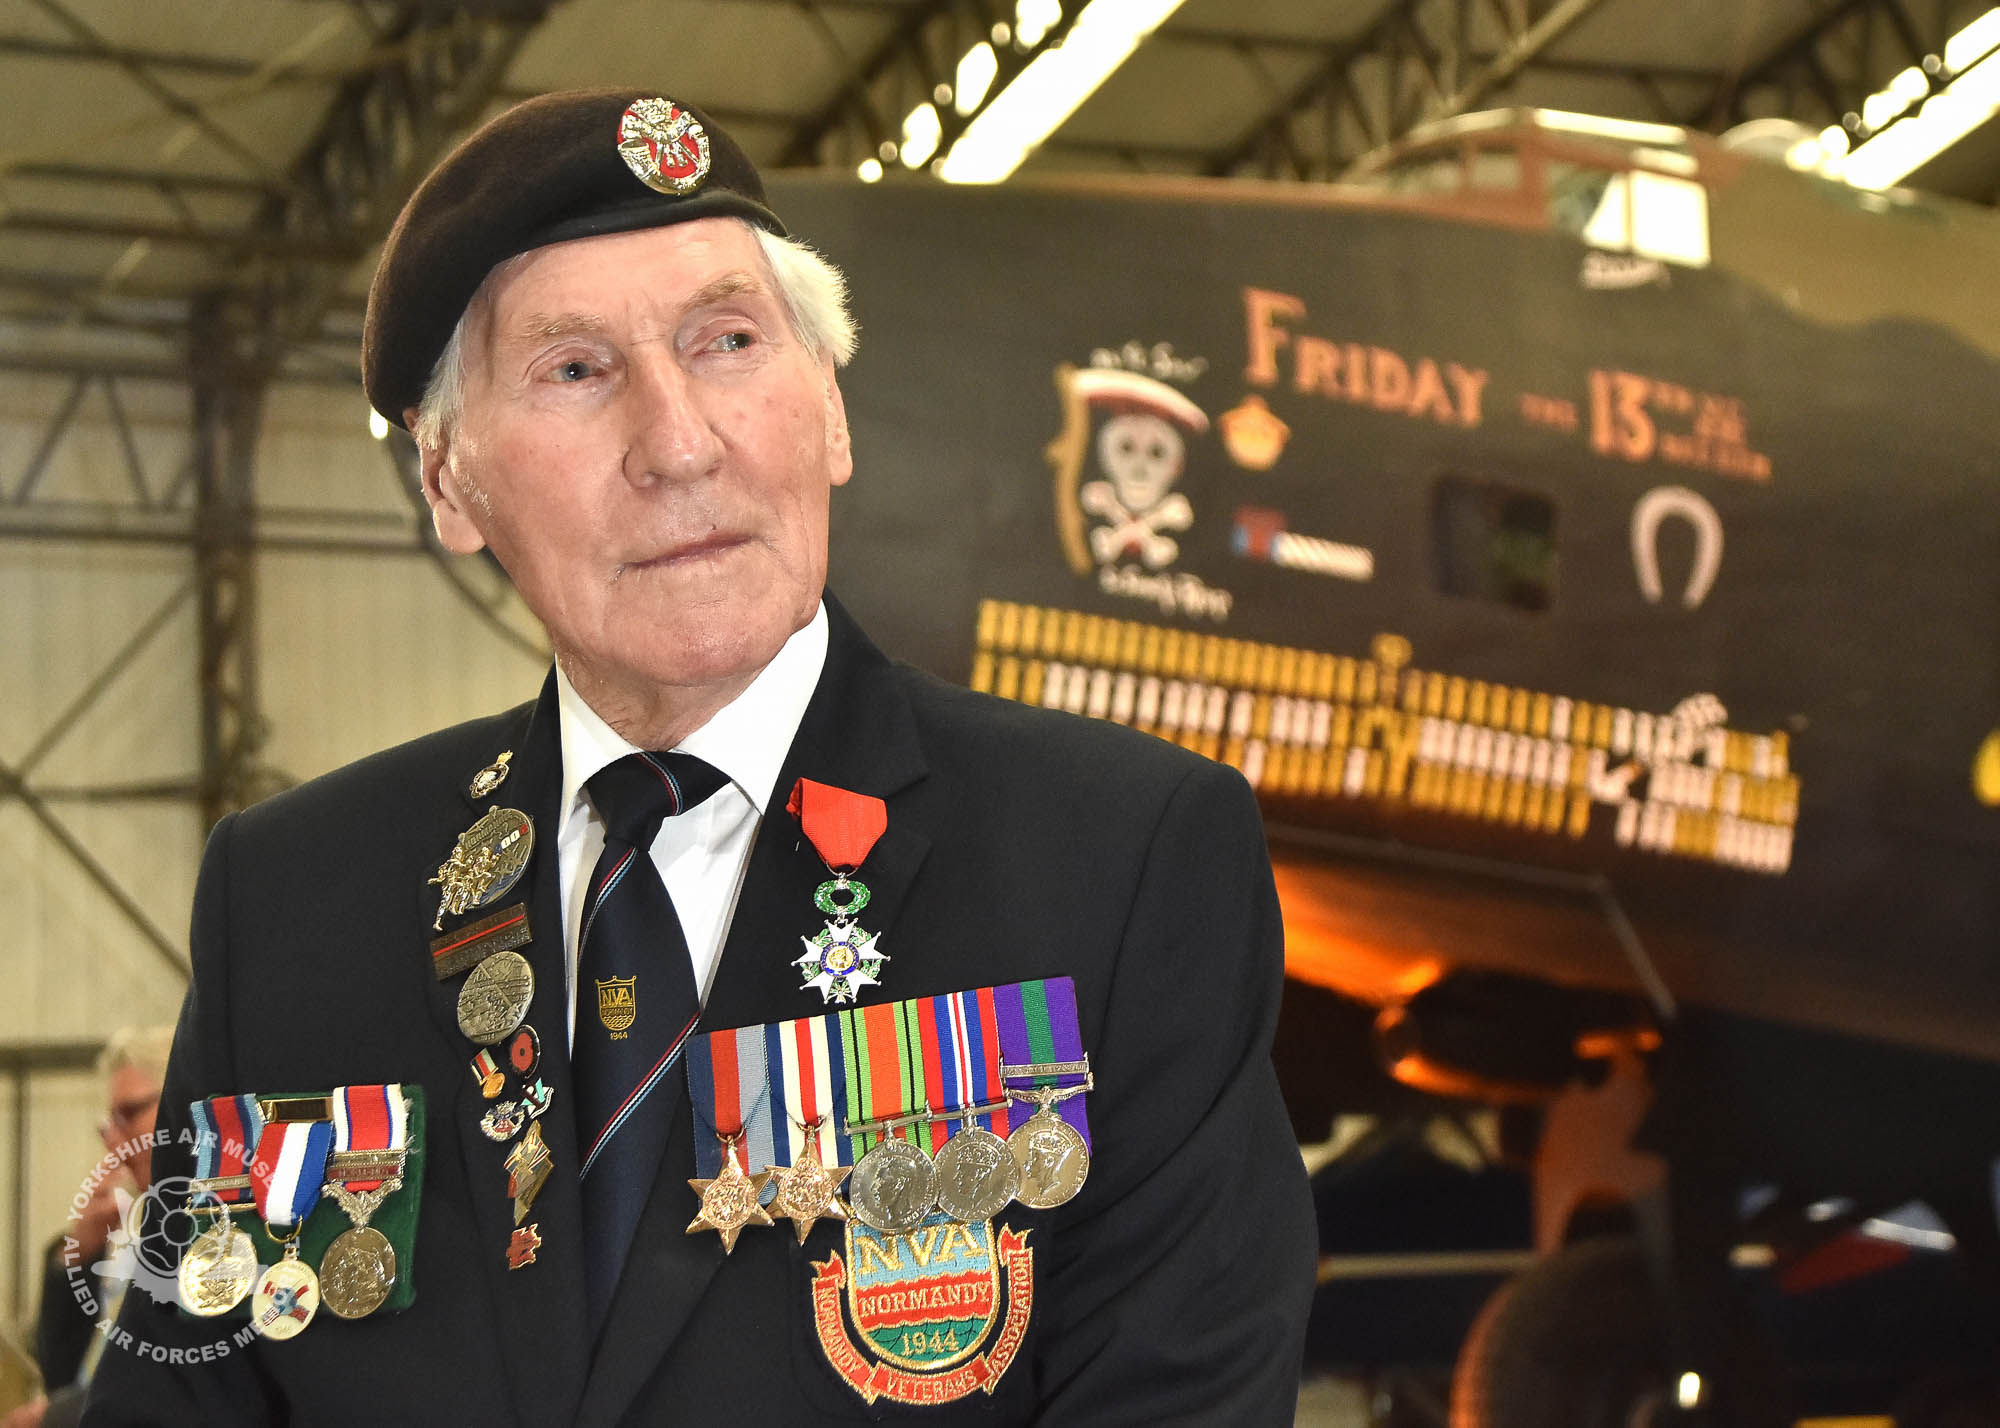 Legion d'Honneur medals presented to 21 Normandy Veterans at Yorkshire Air Museum on Sunday 22nd May, 2016. Pictured is Ken Smith of Wheldrake, York, who recieved the medal from Colonel Bruno Cunat, French Liasion Officer to the Ministry of Defence. Picture David Harrison/ Yorkshire Air Museum. (Private 5th BAttalion Duke of Cornwall's Light Infantry. Served in Normandy from D-Day. Wounded in action on 20th October 44 and evacuated by Dakota air ambulance to UK)